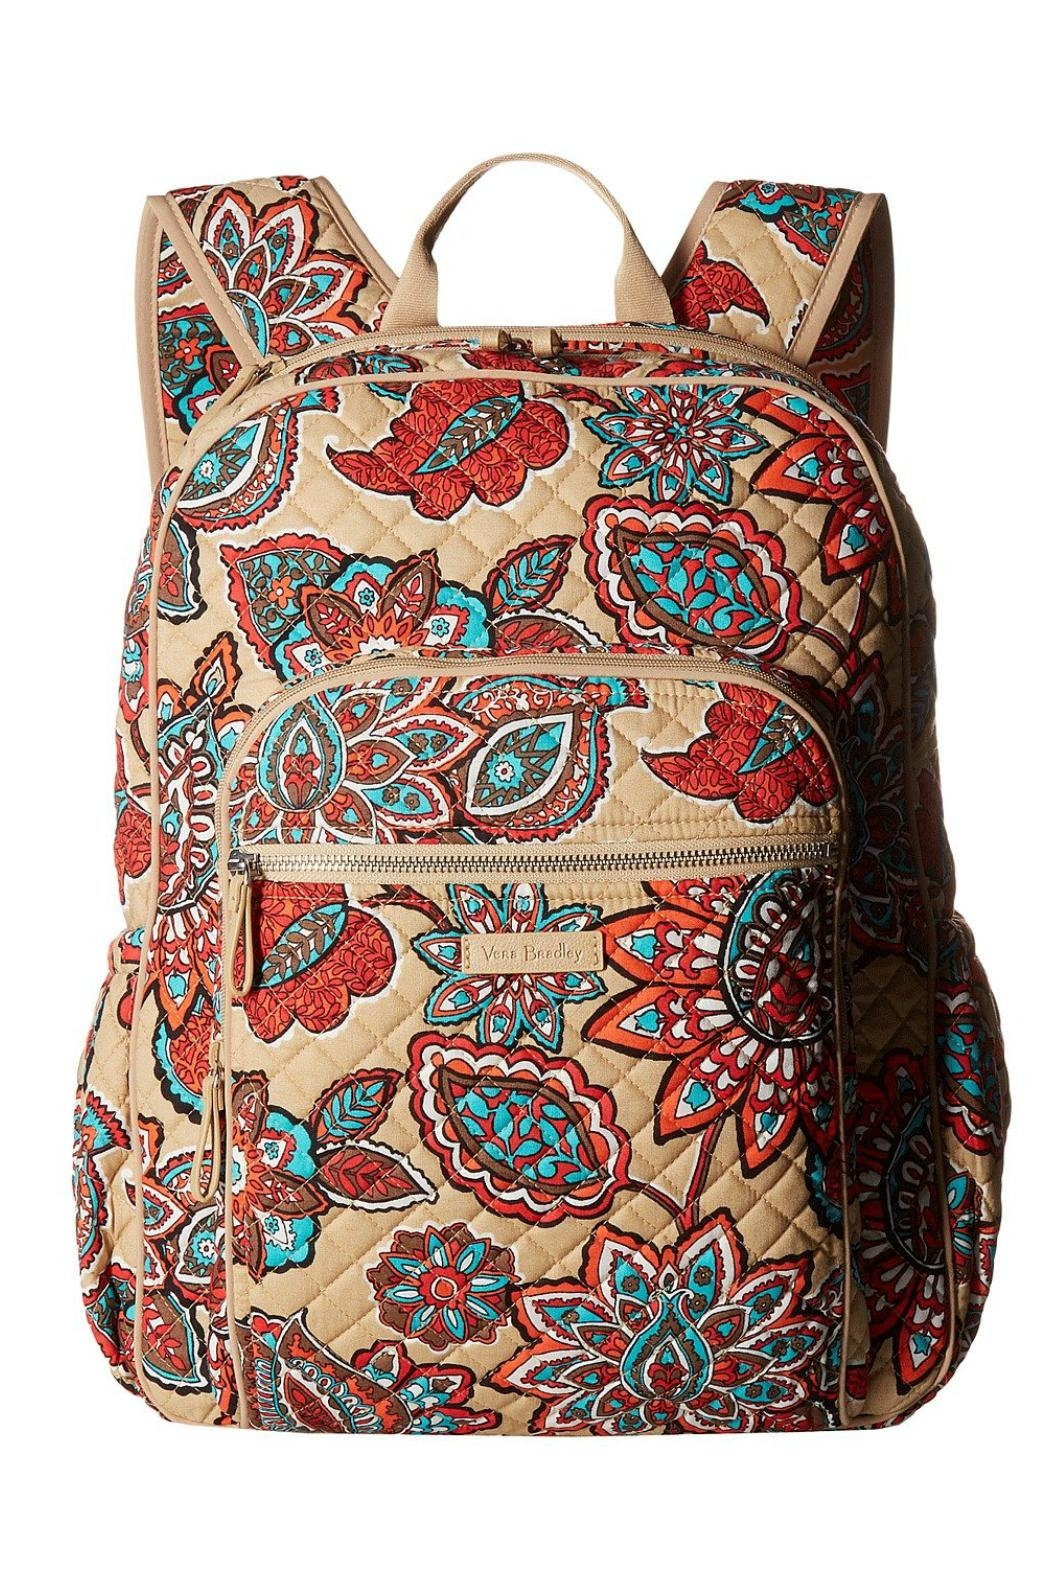 8ec643d381 Vera Bradley Desert Floral Campus-Backpack from Kentucky by Mimi s ...